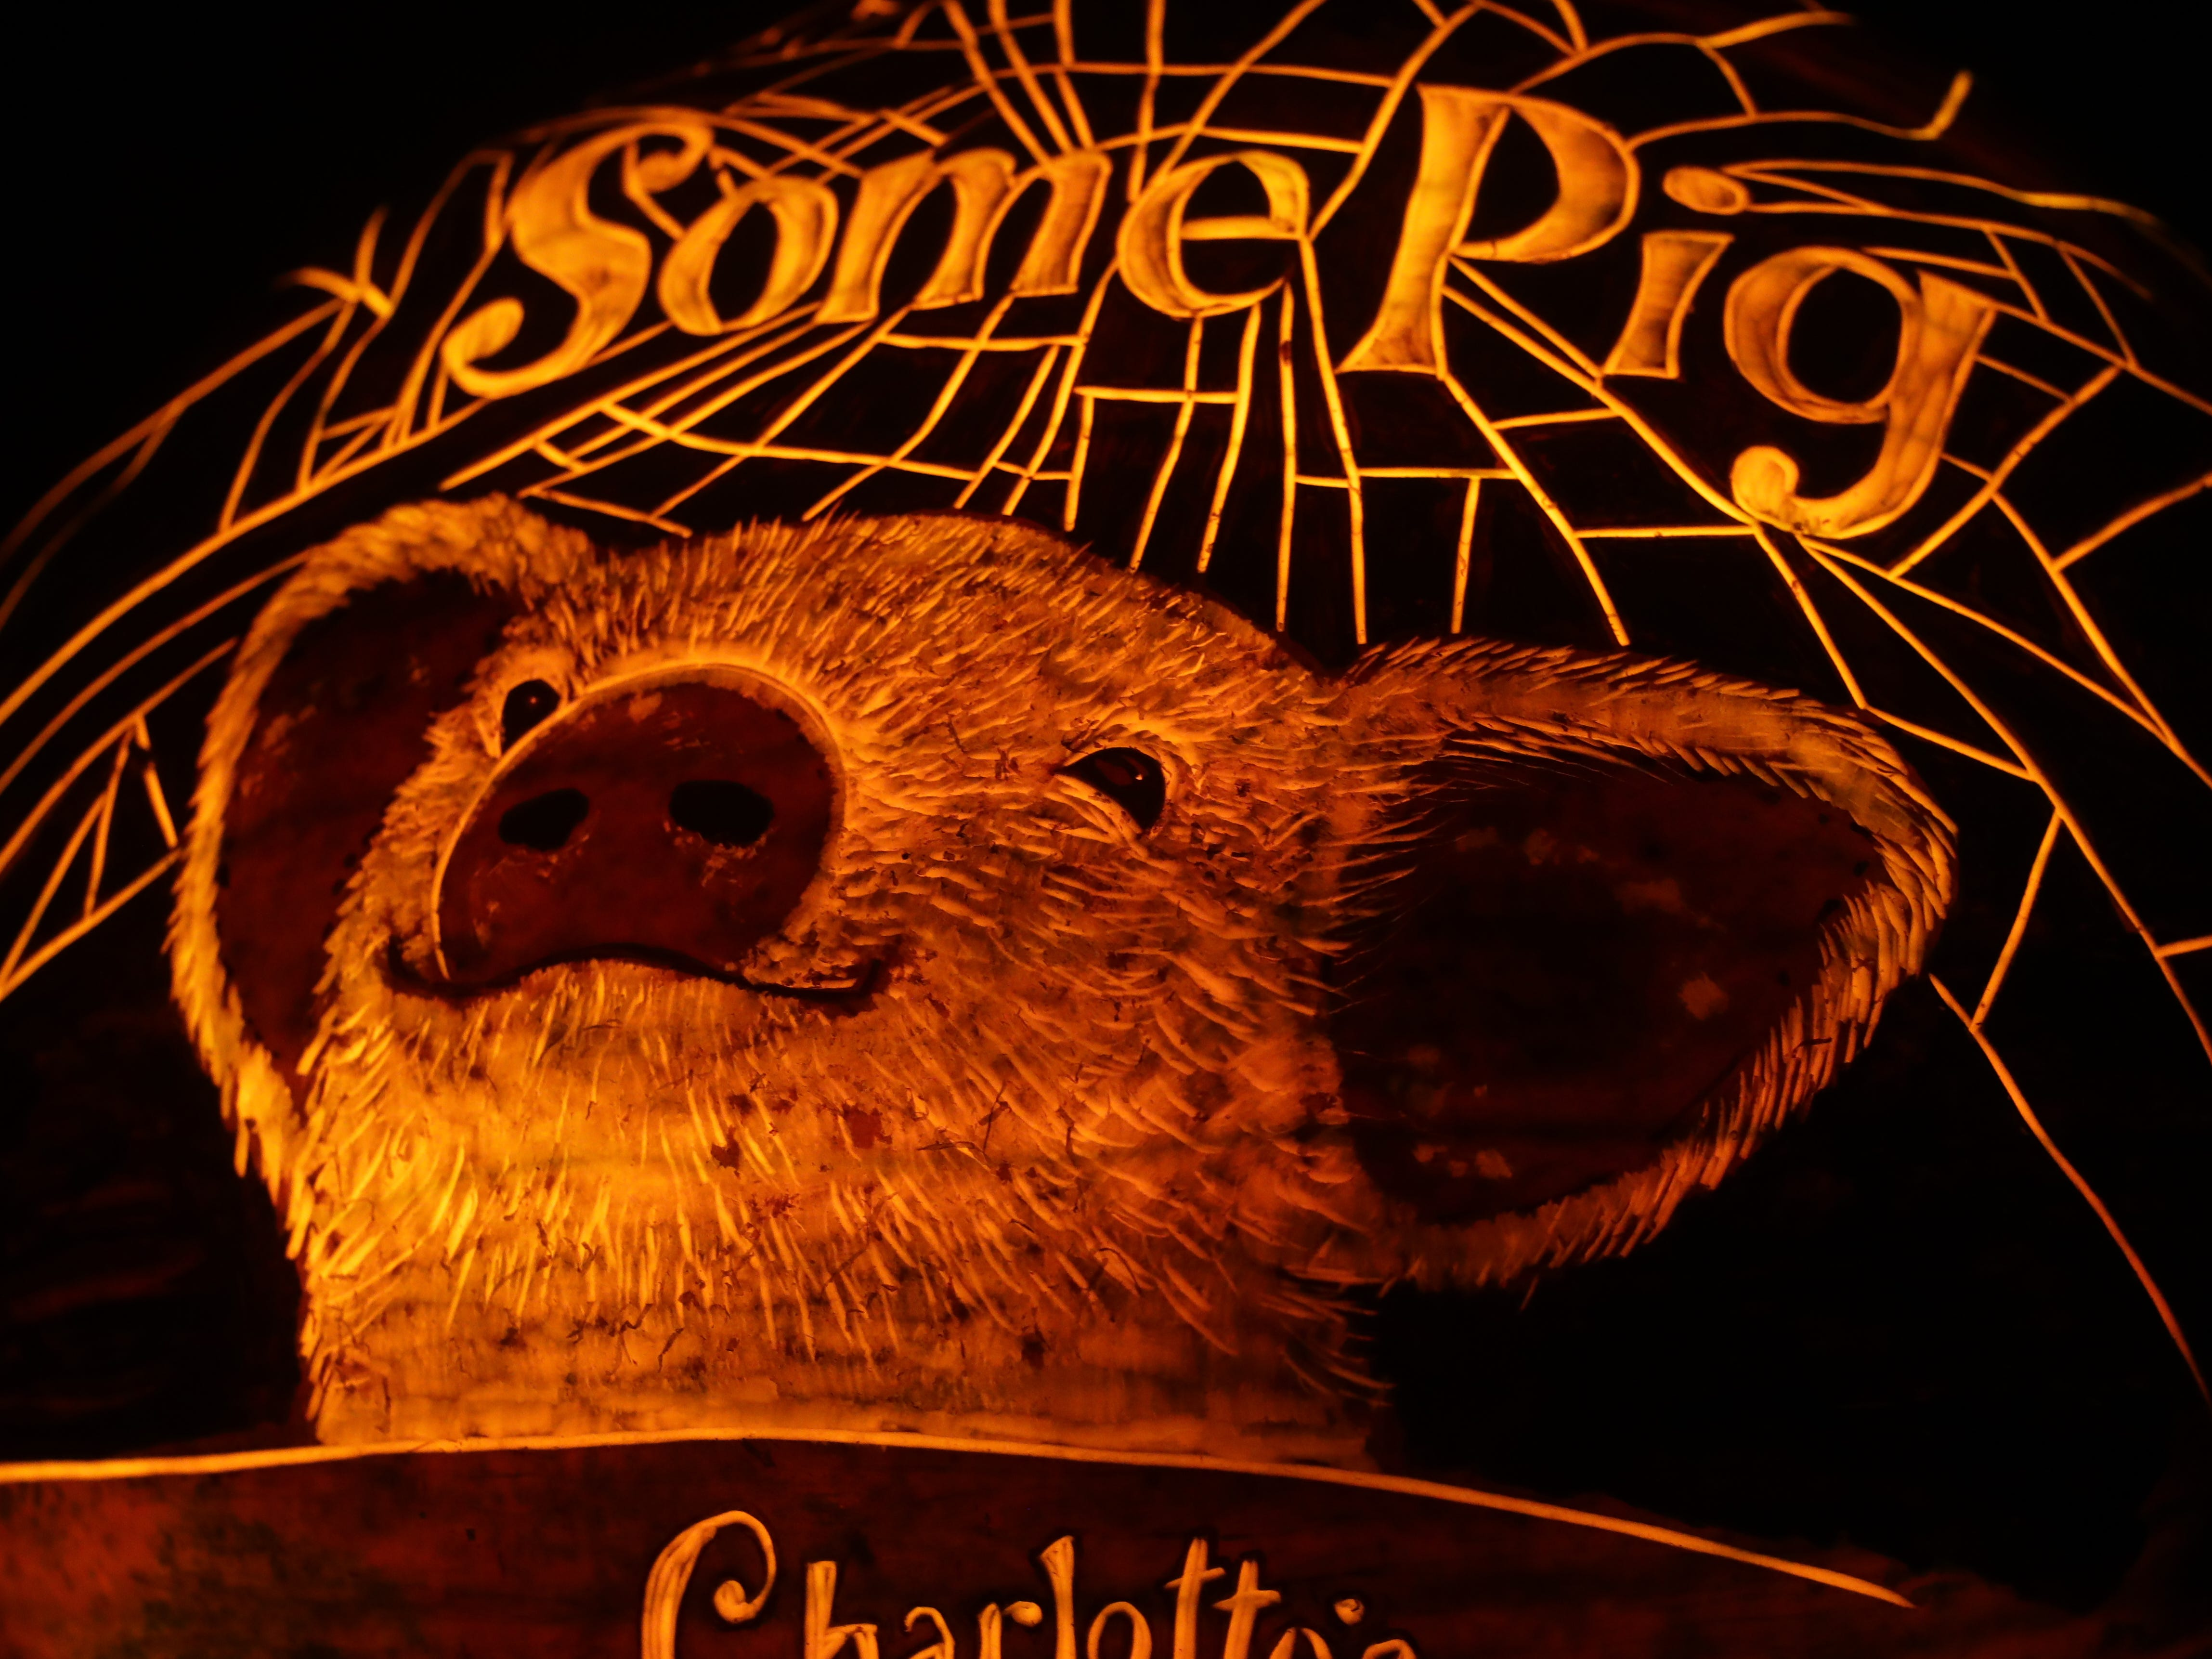 Charlotte's Web appears on a pumpkin at this year's Jack O' Lantern Spectacular. Oct. 9, 2018